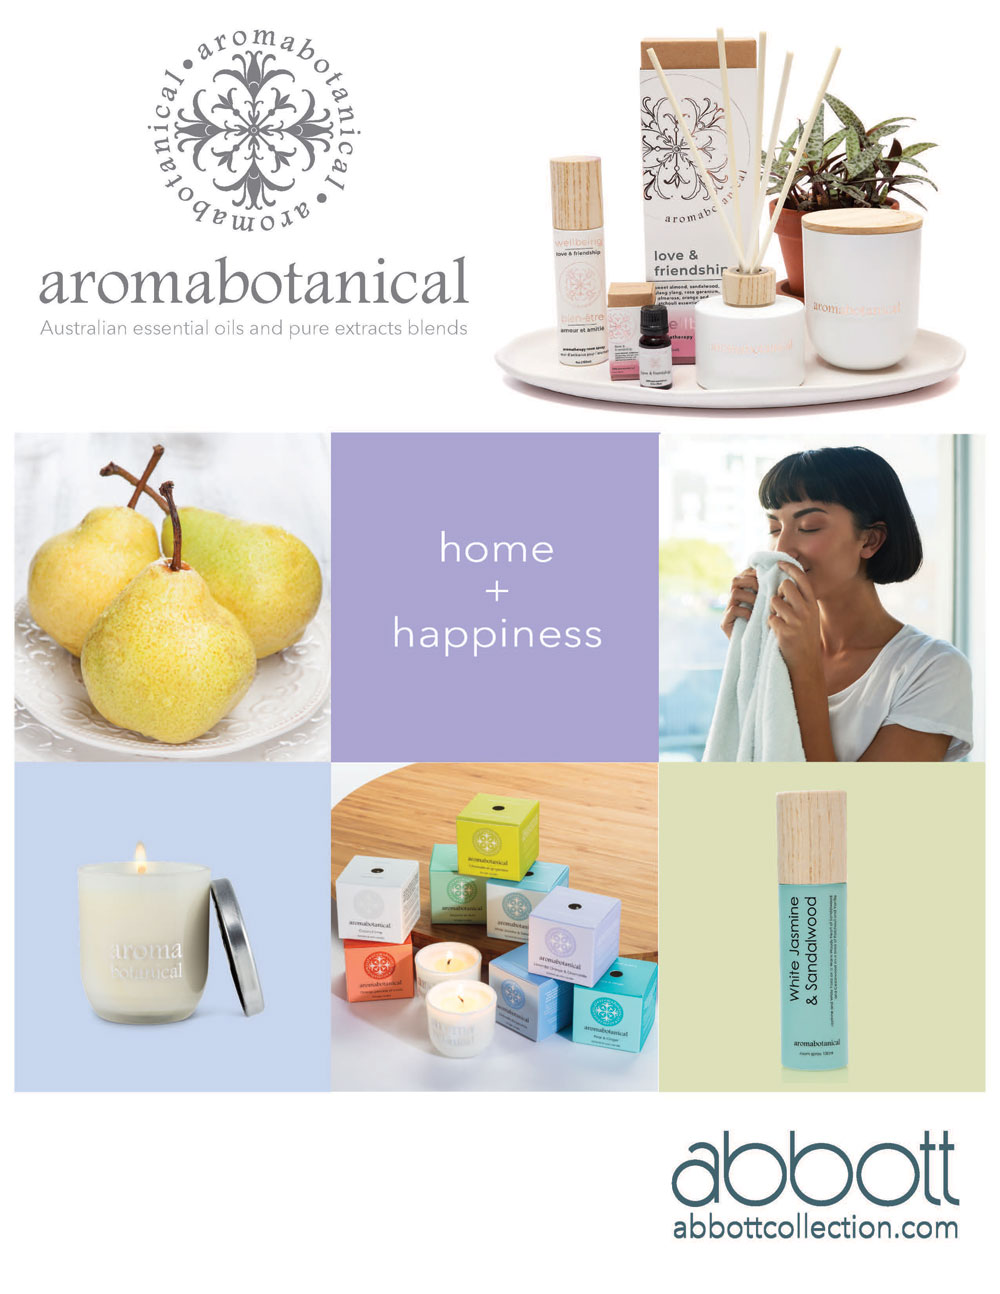 https://assets.abbottcollection.com/wp-content/uploads/2021/08/11104305/Aromabotanical-cover-web.jpg